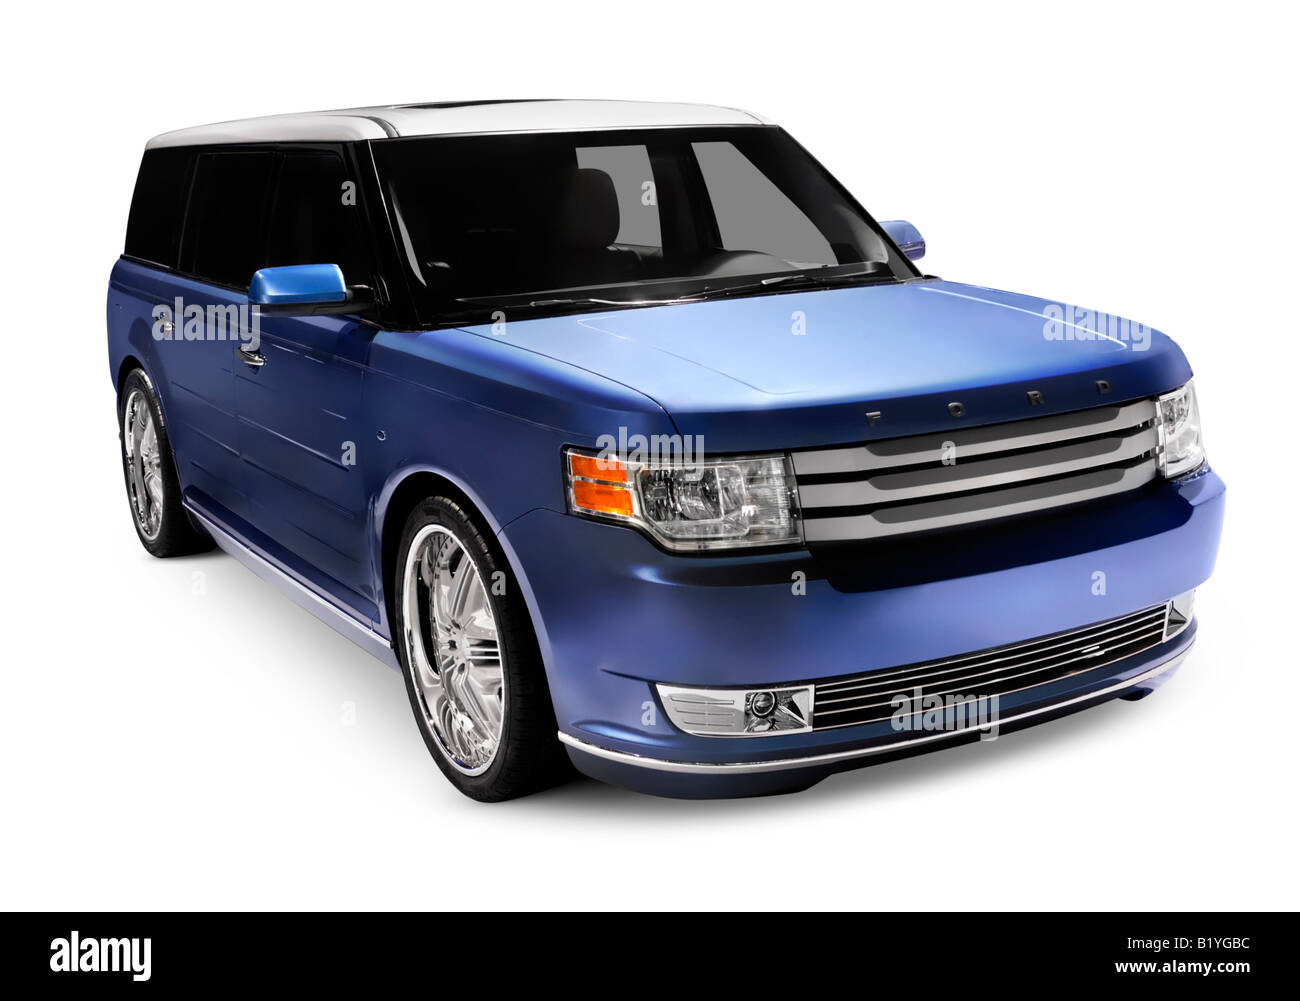 2009 Ford Flex - Stock Image